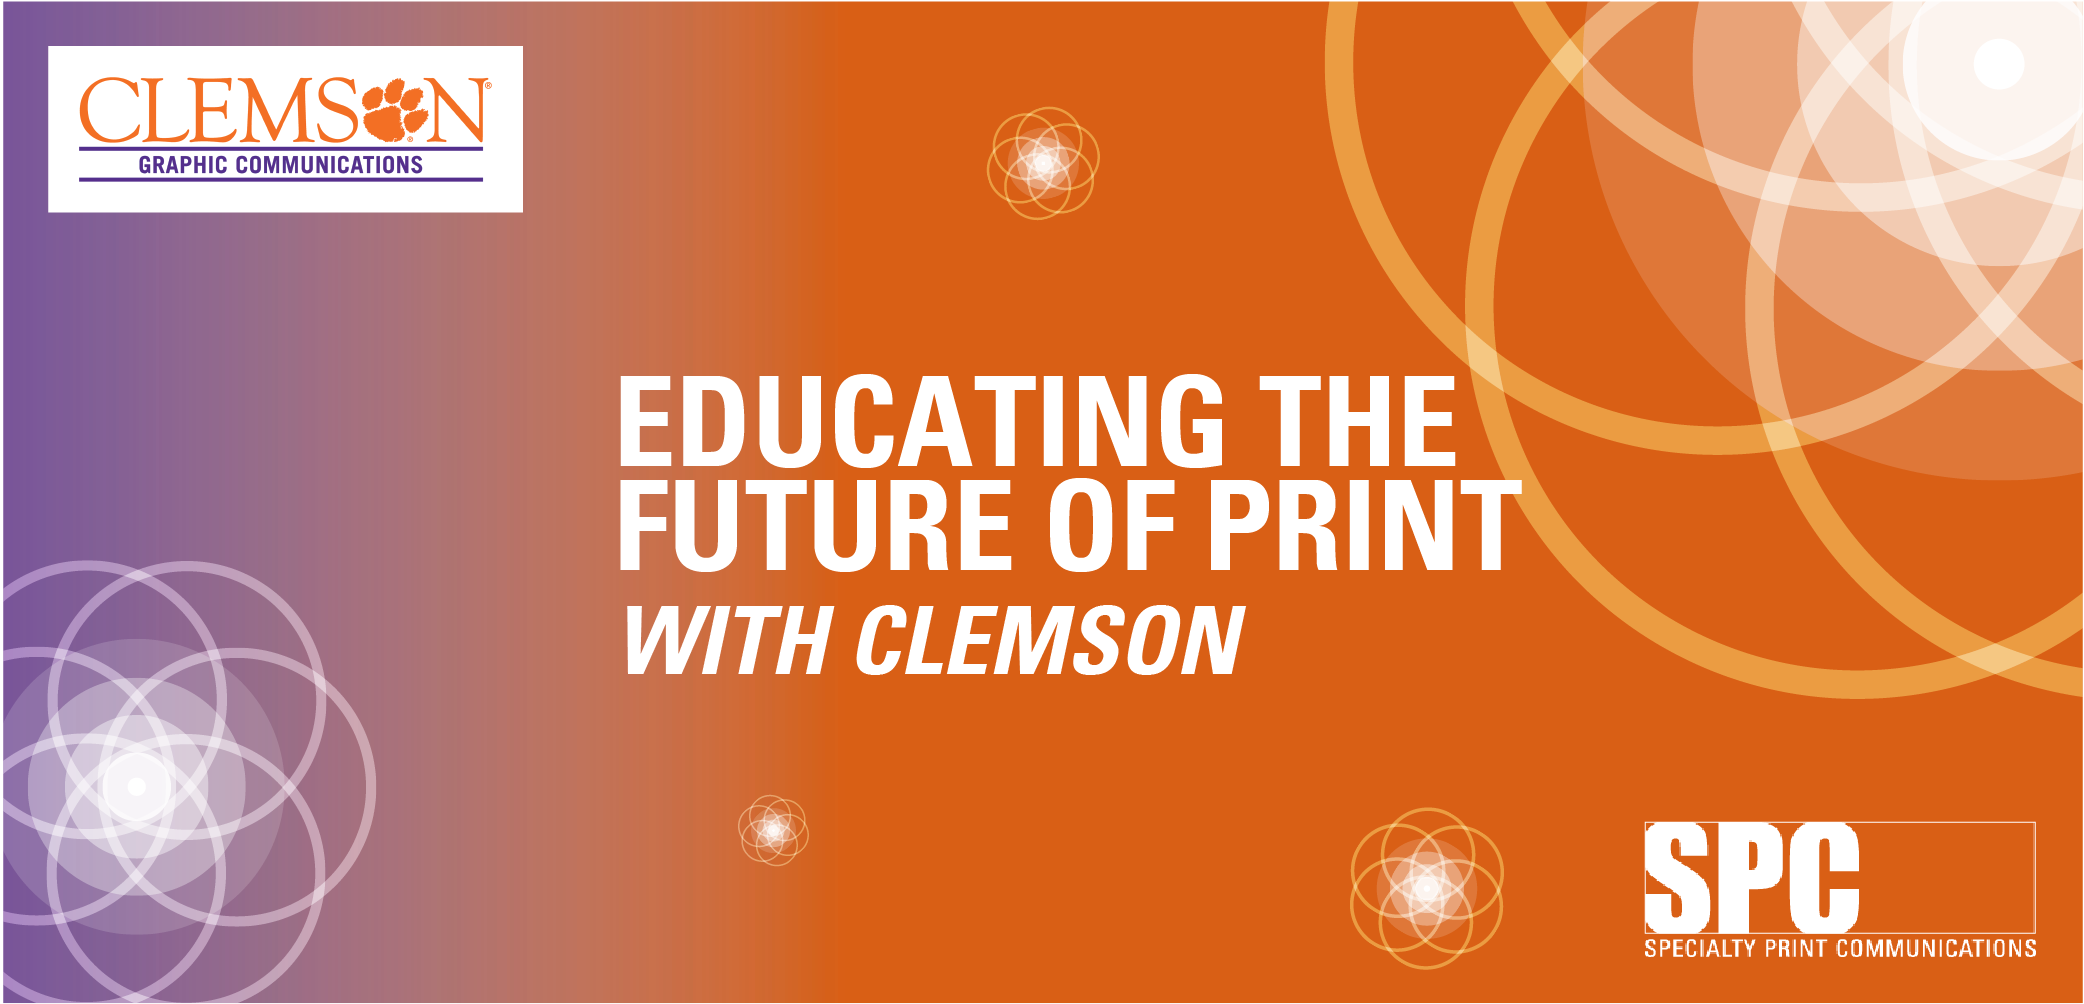 Educating the Future of Print with Clemson